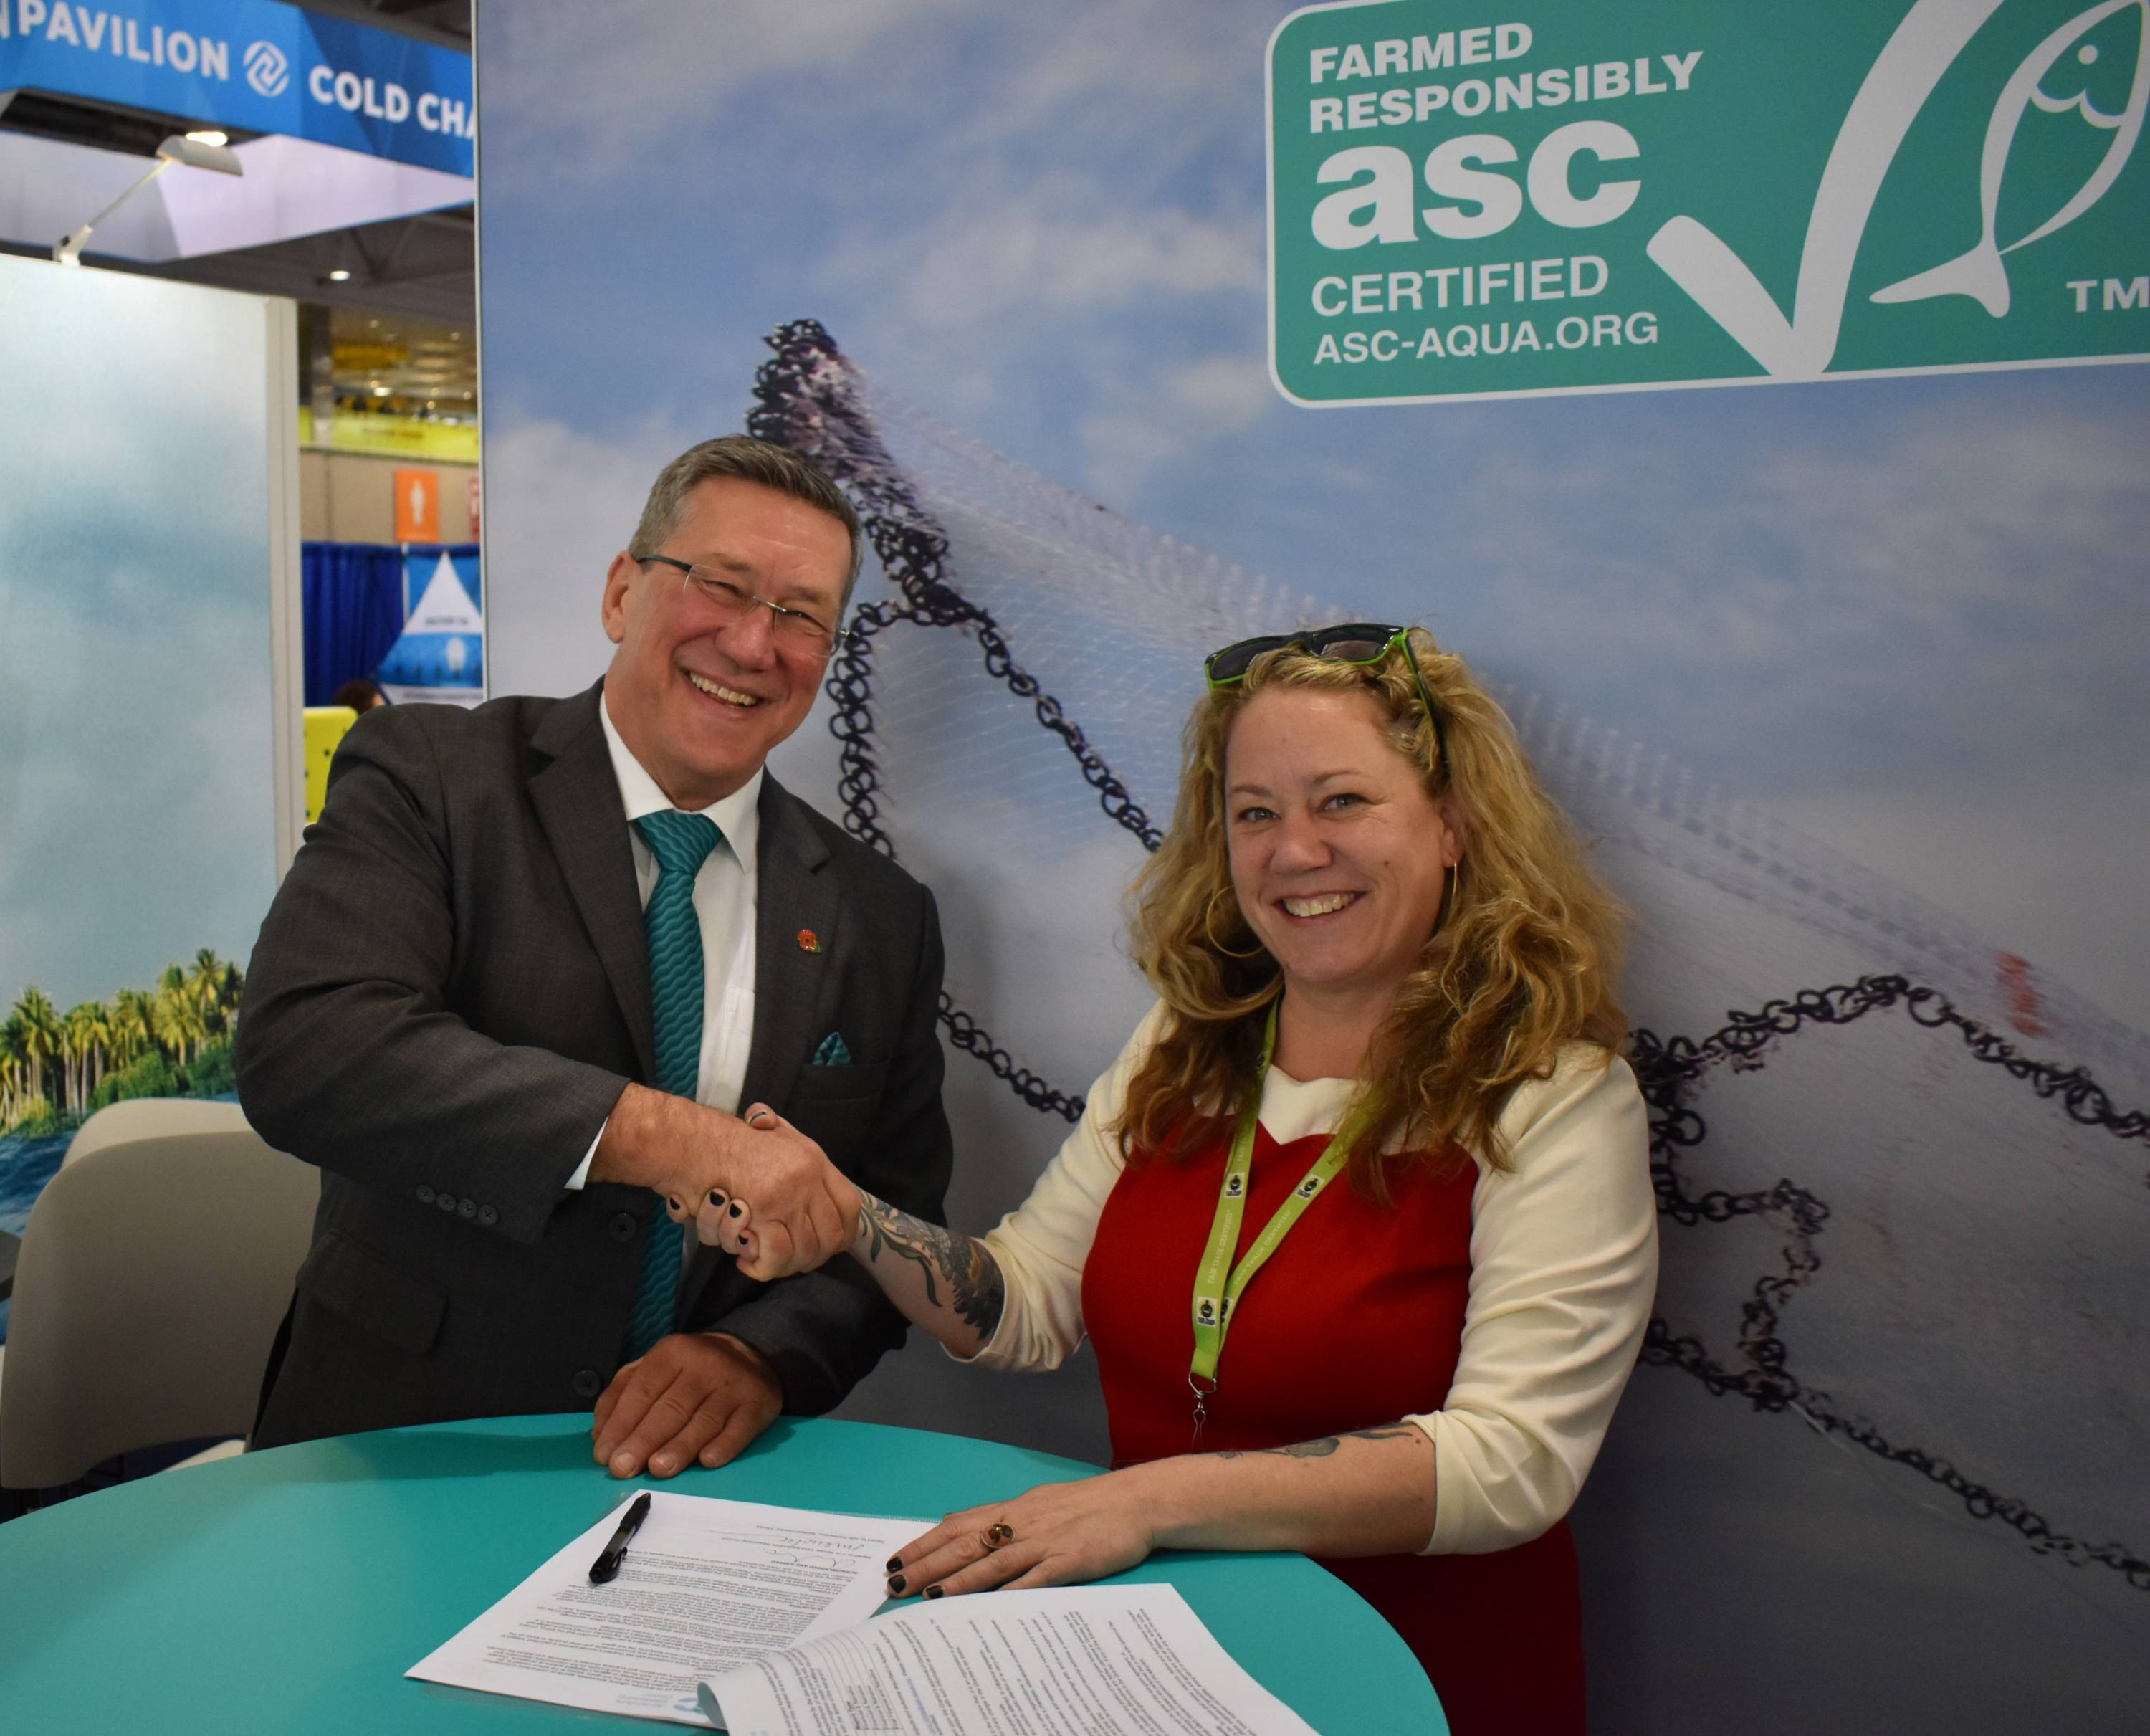 Chris Ninnes, CEO of ASC and Julie Kuchepatov, Director, Seafood at Fair Trade USA shake hands after signing the MOU at the ASC stand at the 2019 Seafood Expo North America in Boston